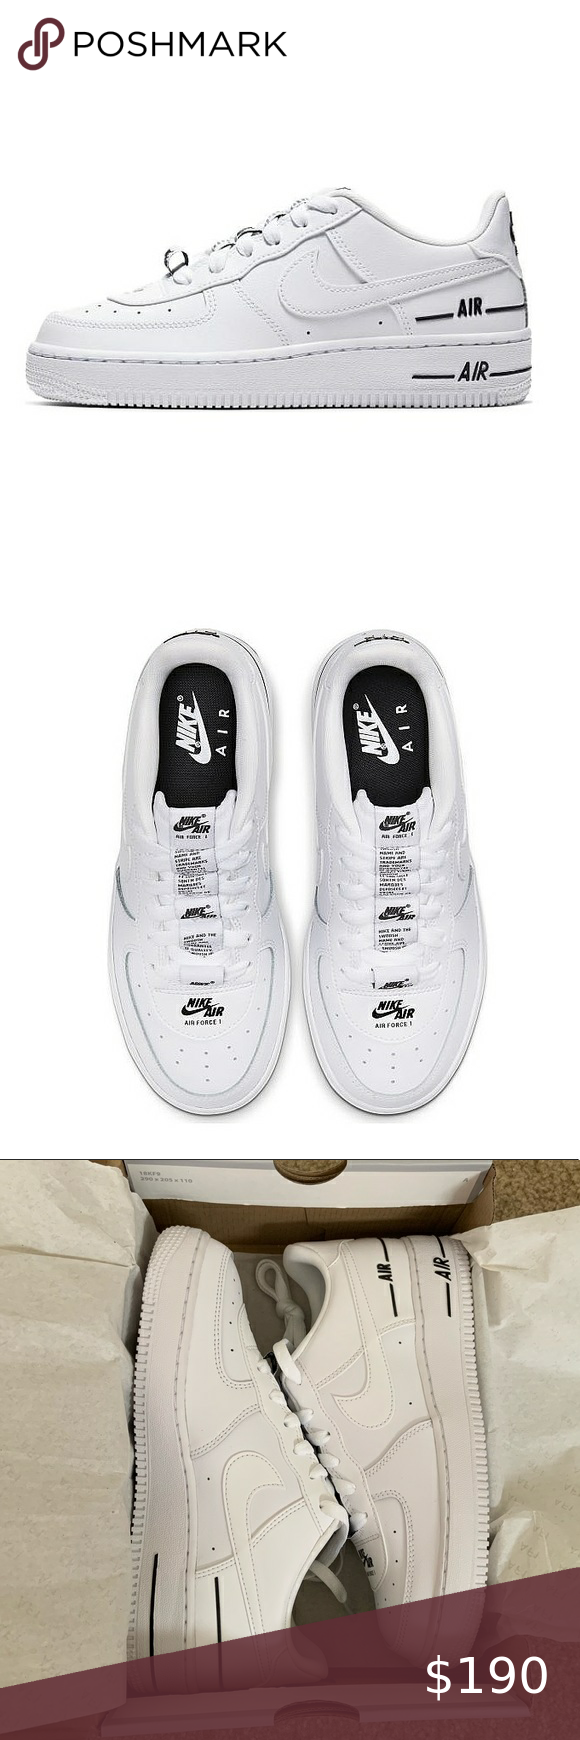 New Nike Air Force 1 Double Air in 2020